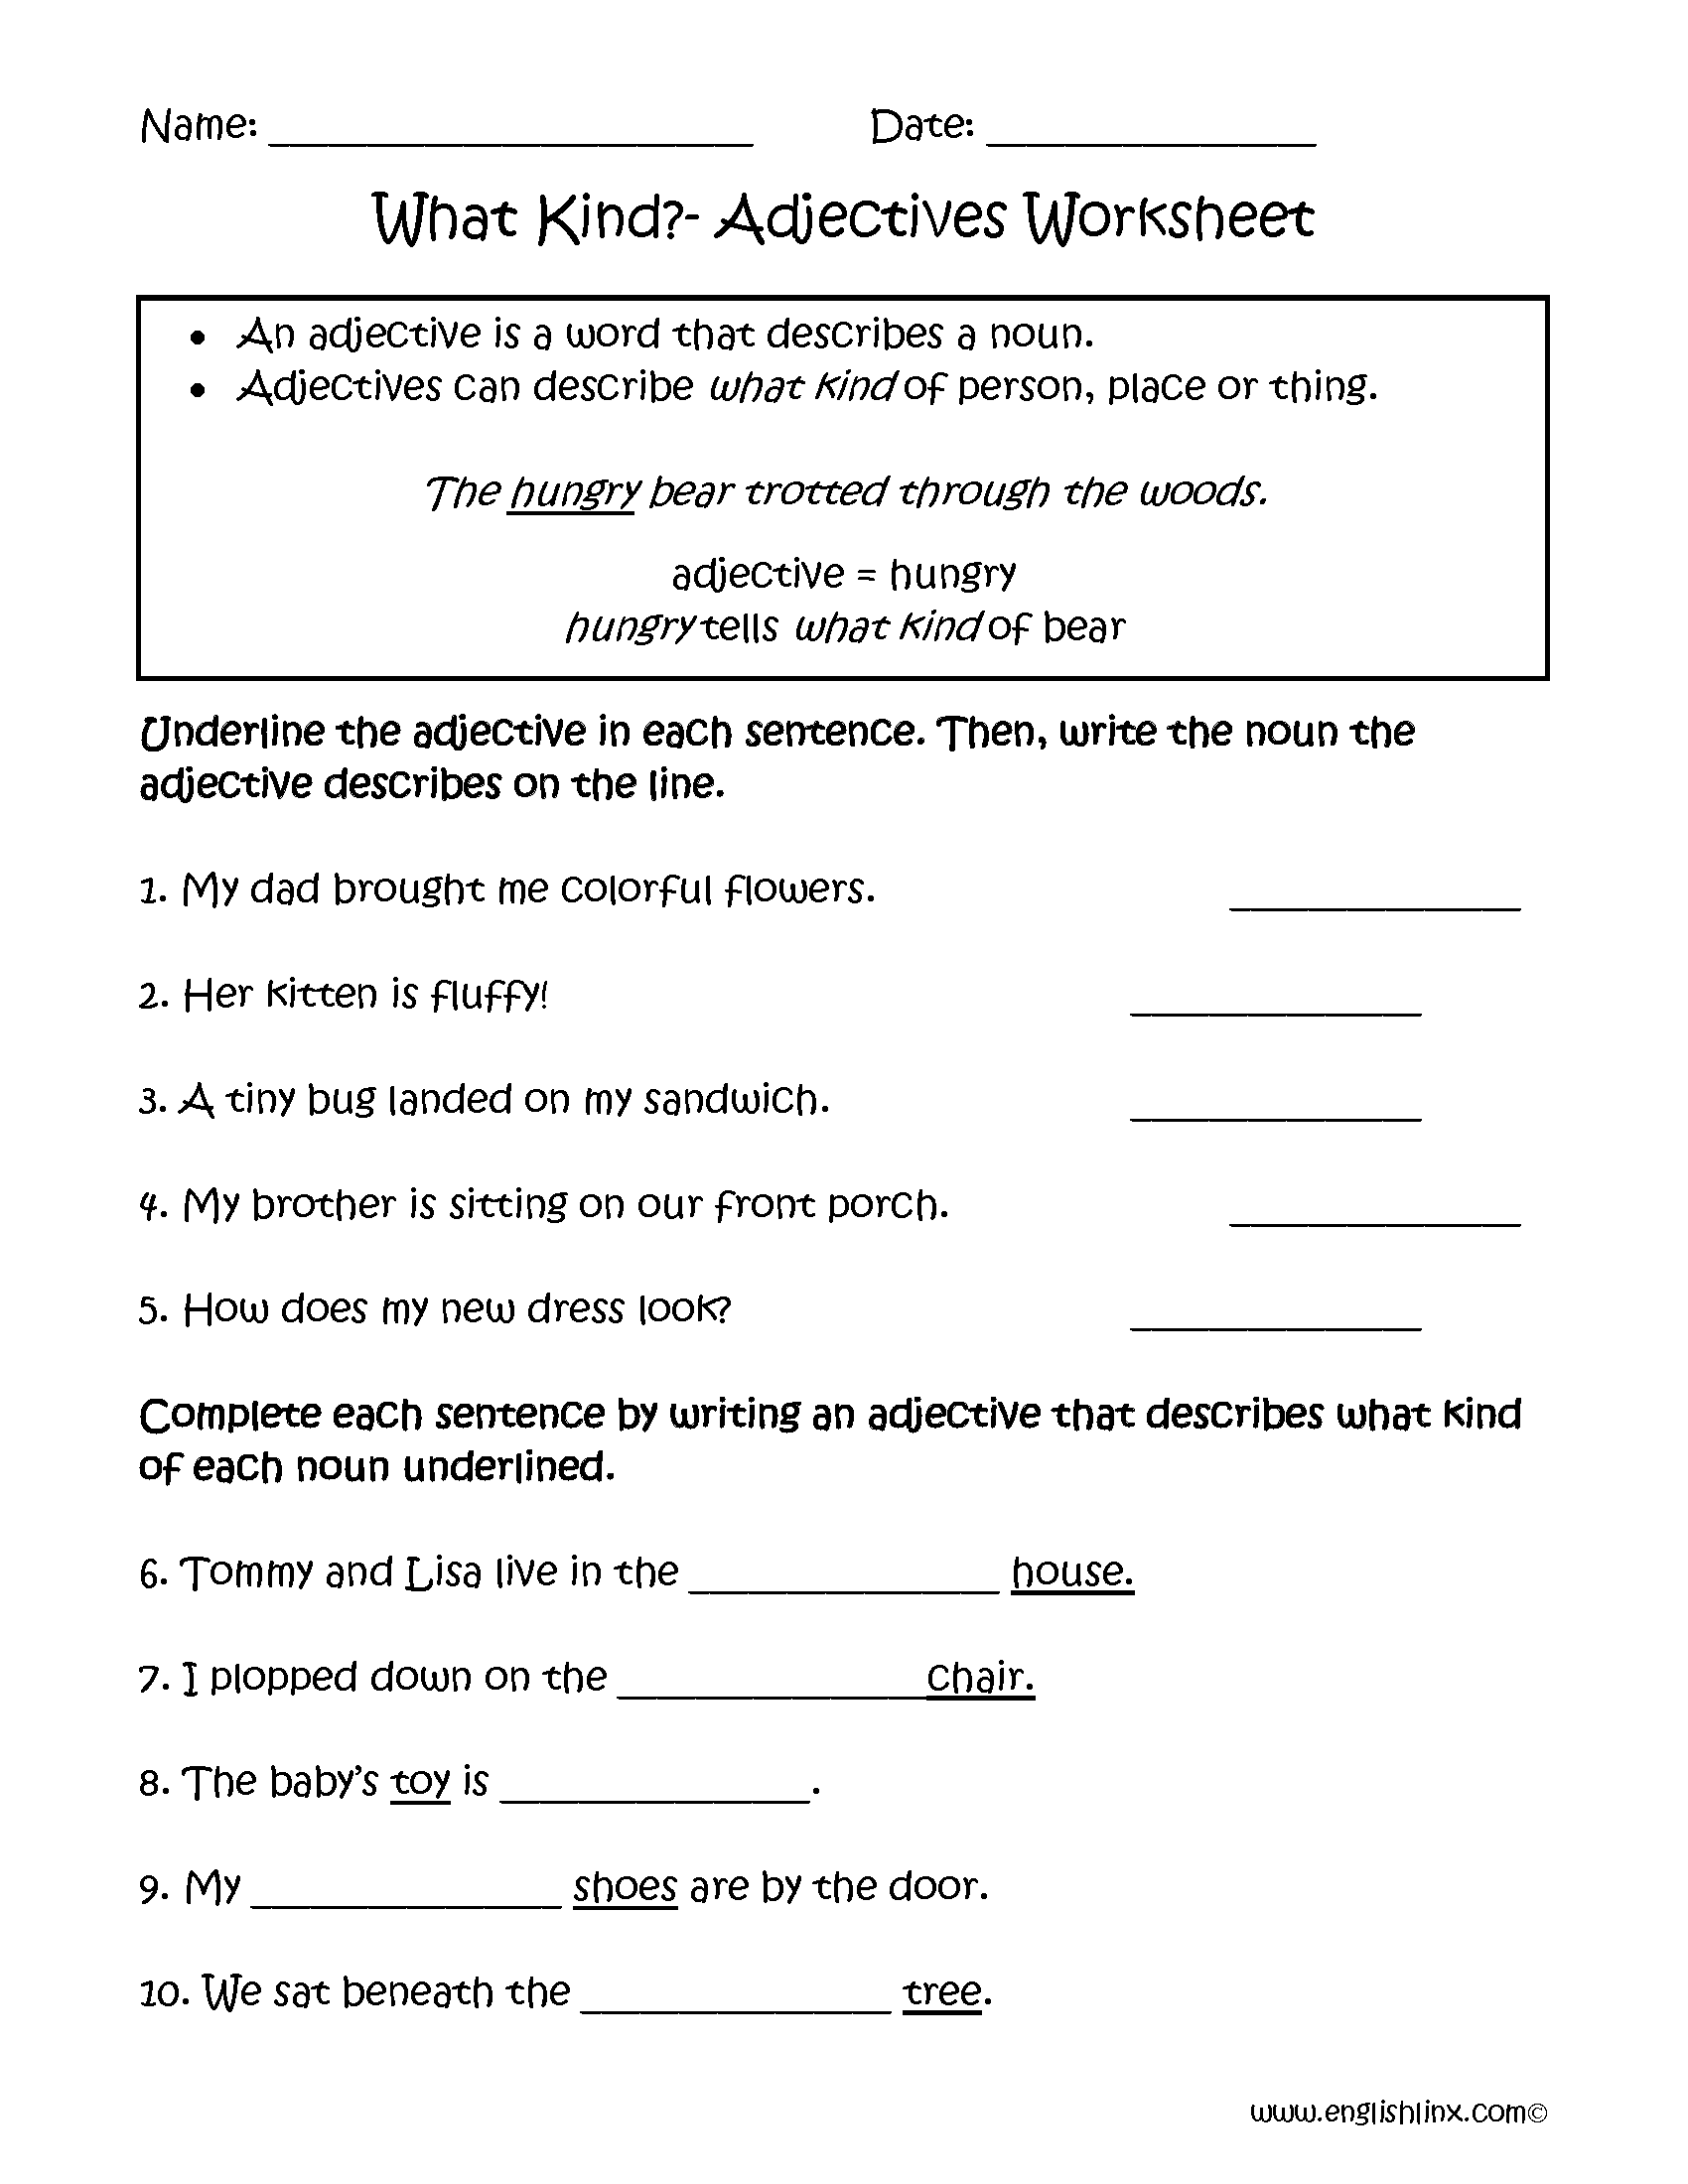 worksheet Adjectives Worksheets For Grade 5 adjectives worksheets regular worksheets